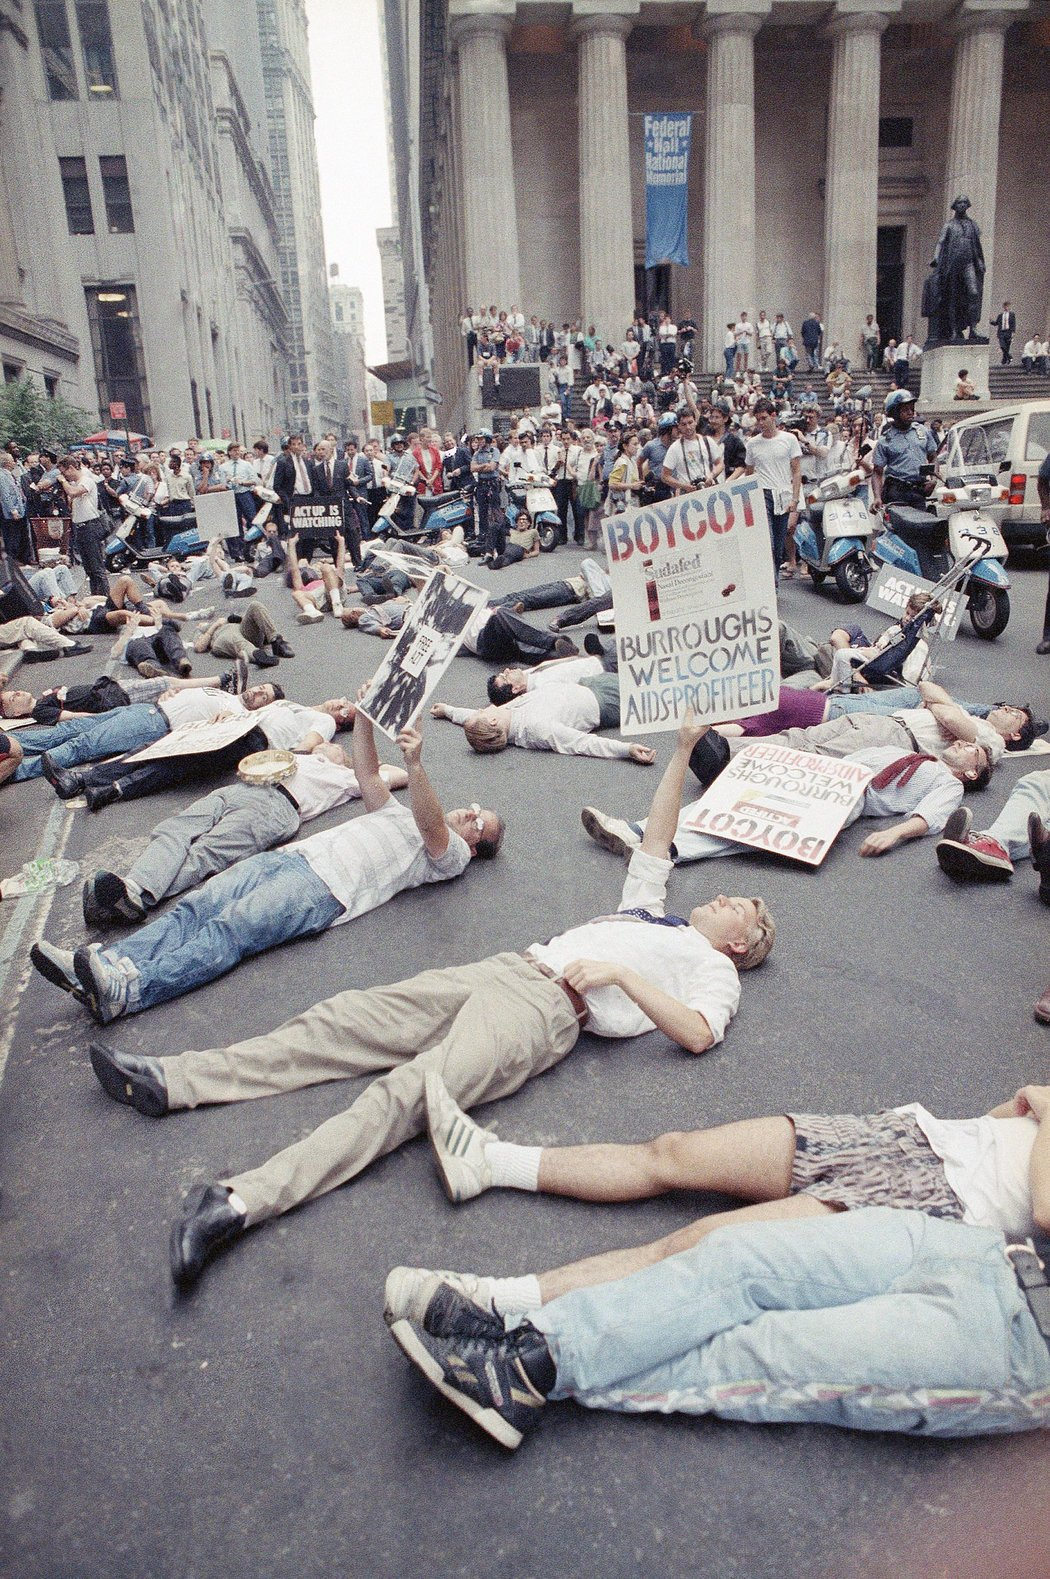 ACT UP members stage die-in at Wall Street